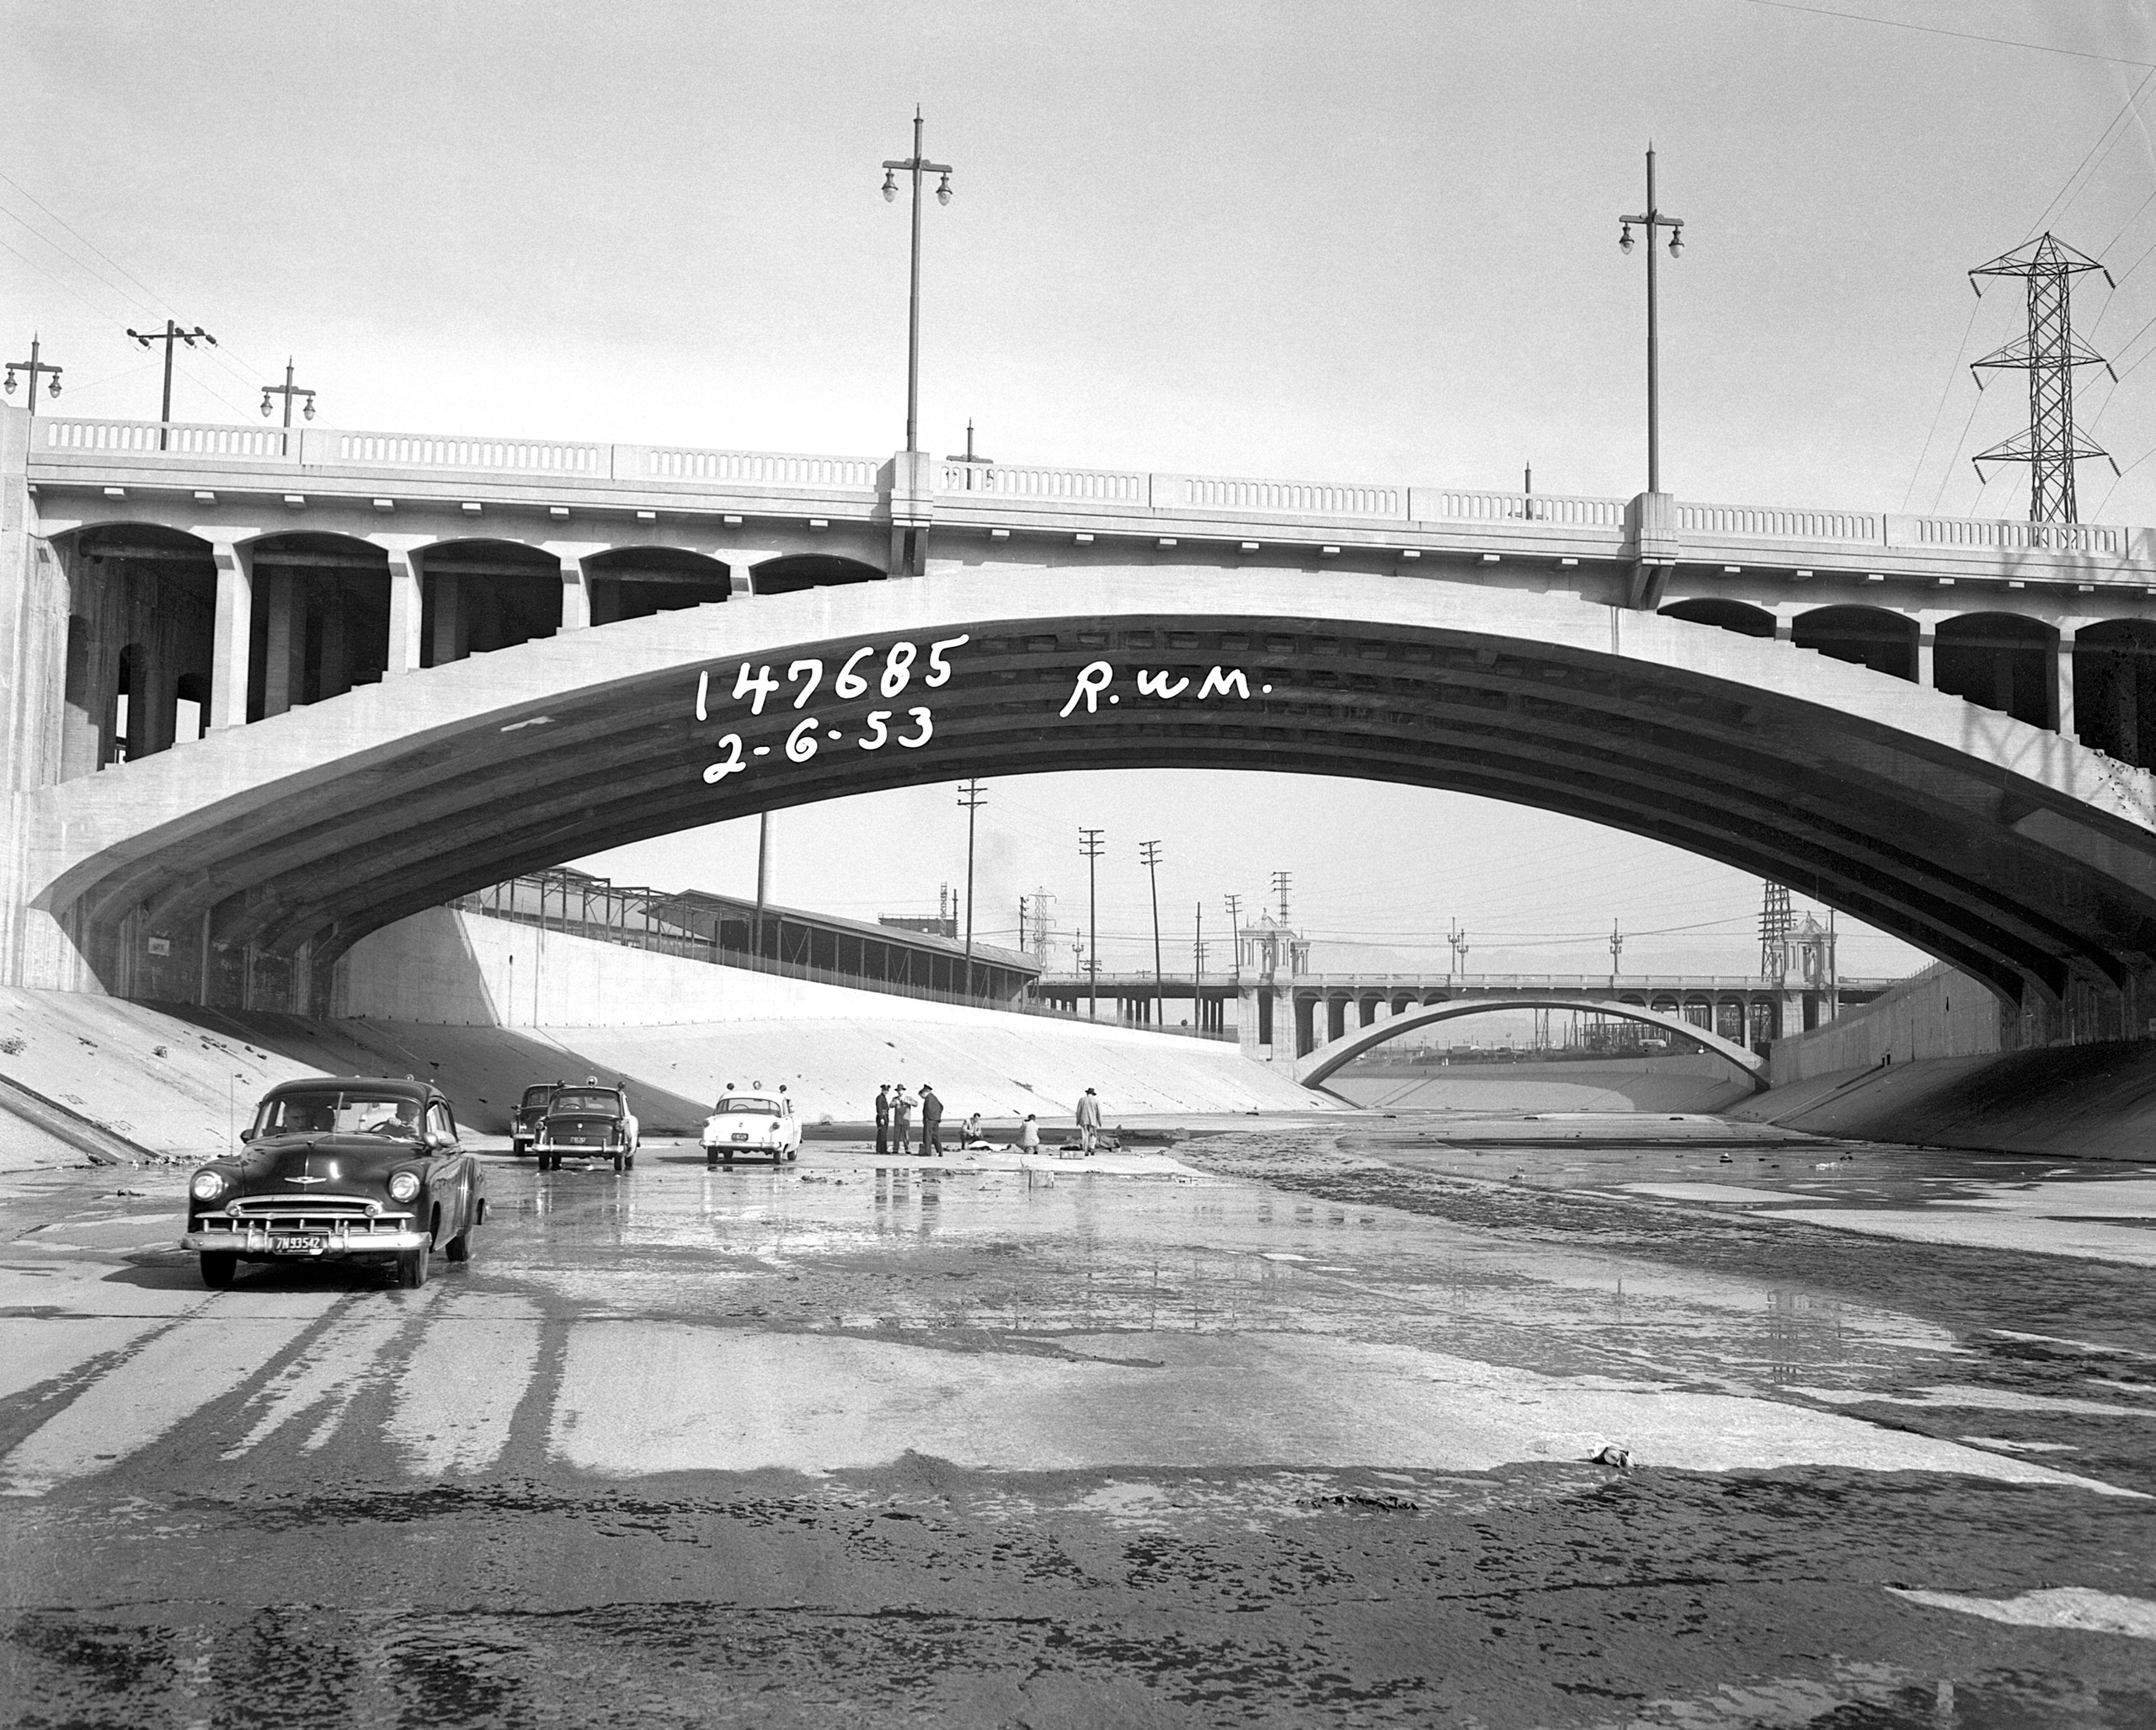 Transient falls 50-feet off Aliso Street Bridge onto the hard concrete of the dry L.A. River bed on February 6, 1953